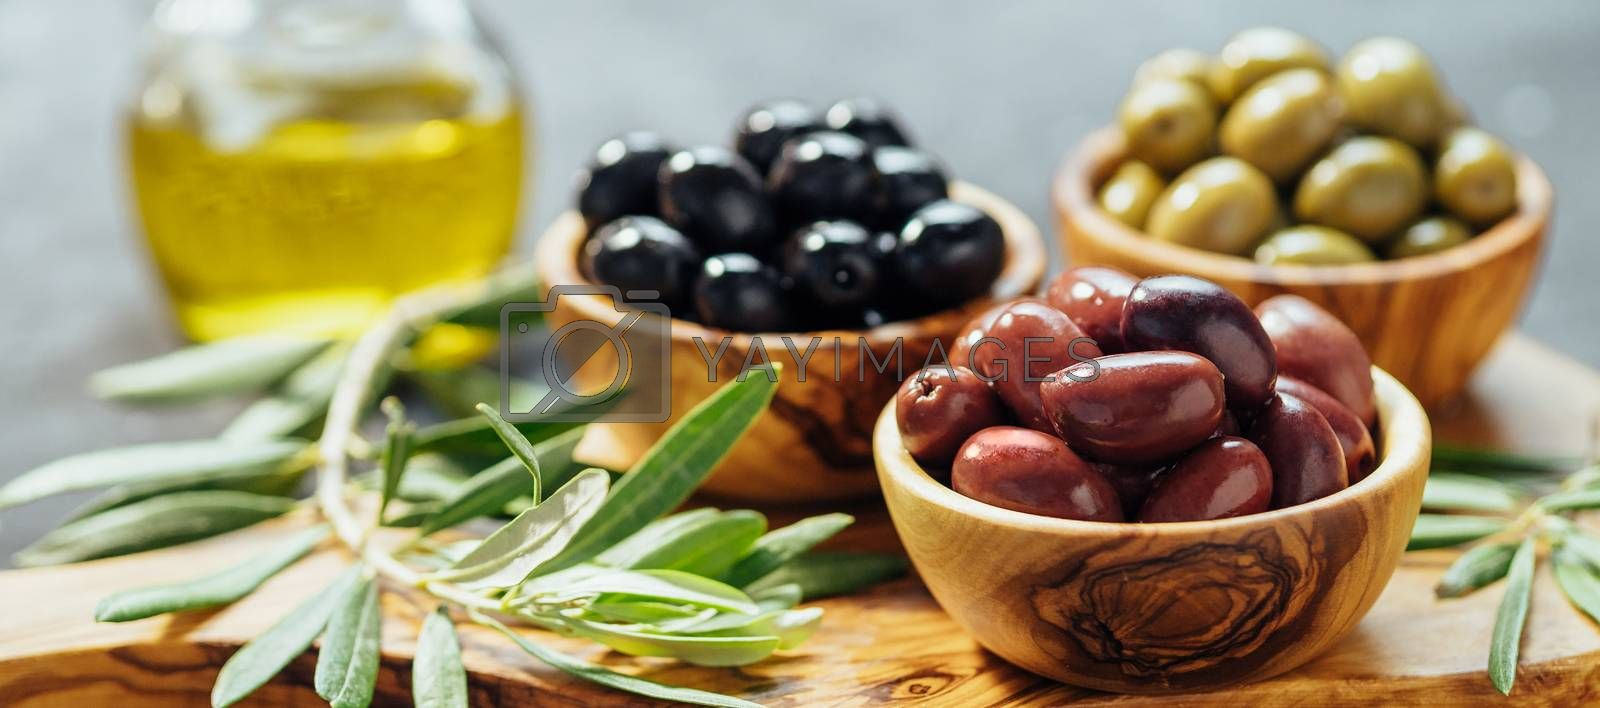 Set of green, red and black olives and olive oil on gray background. Different types of olives in olive wooden bowls and olive oil on wooden cutting board and olive leaves.Copy space.Horizontal banner